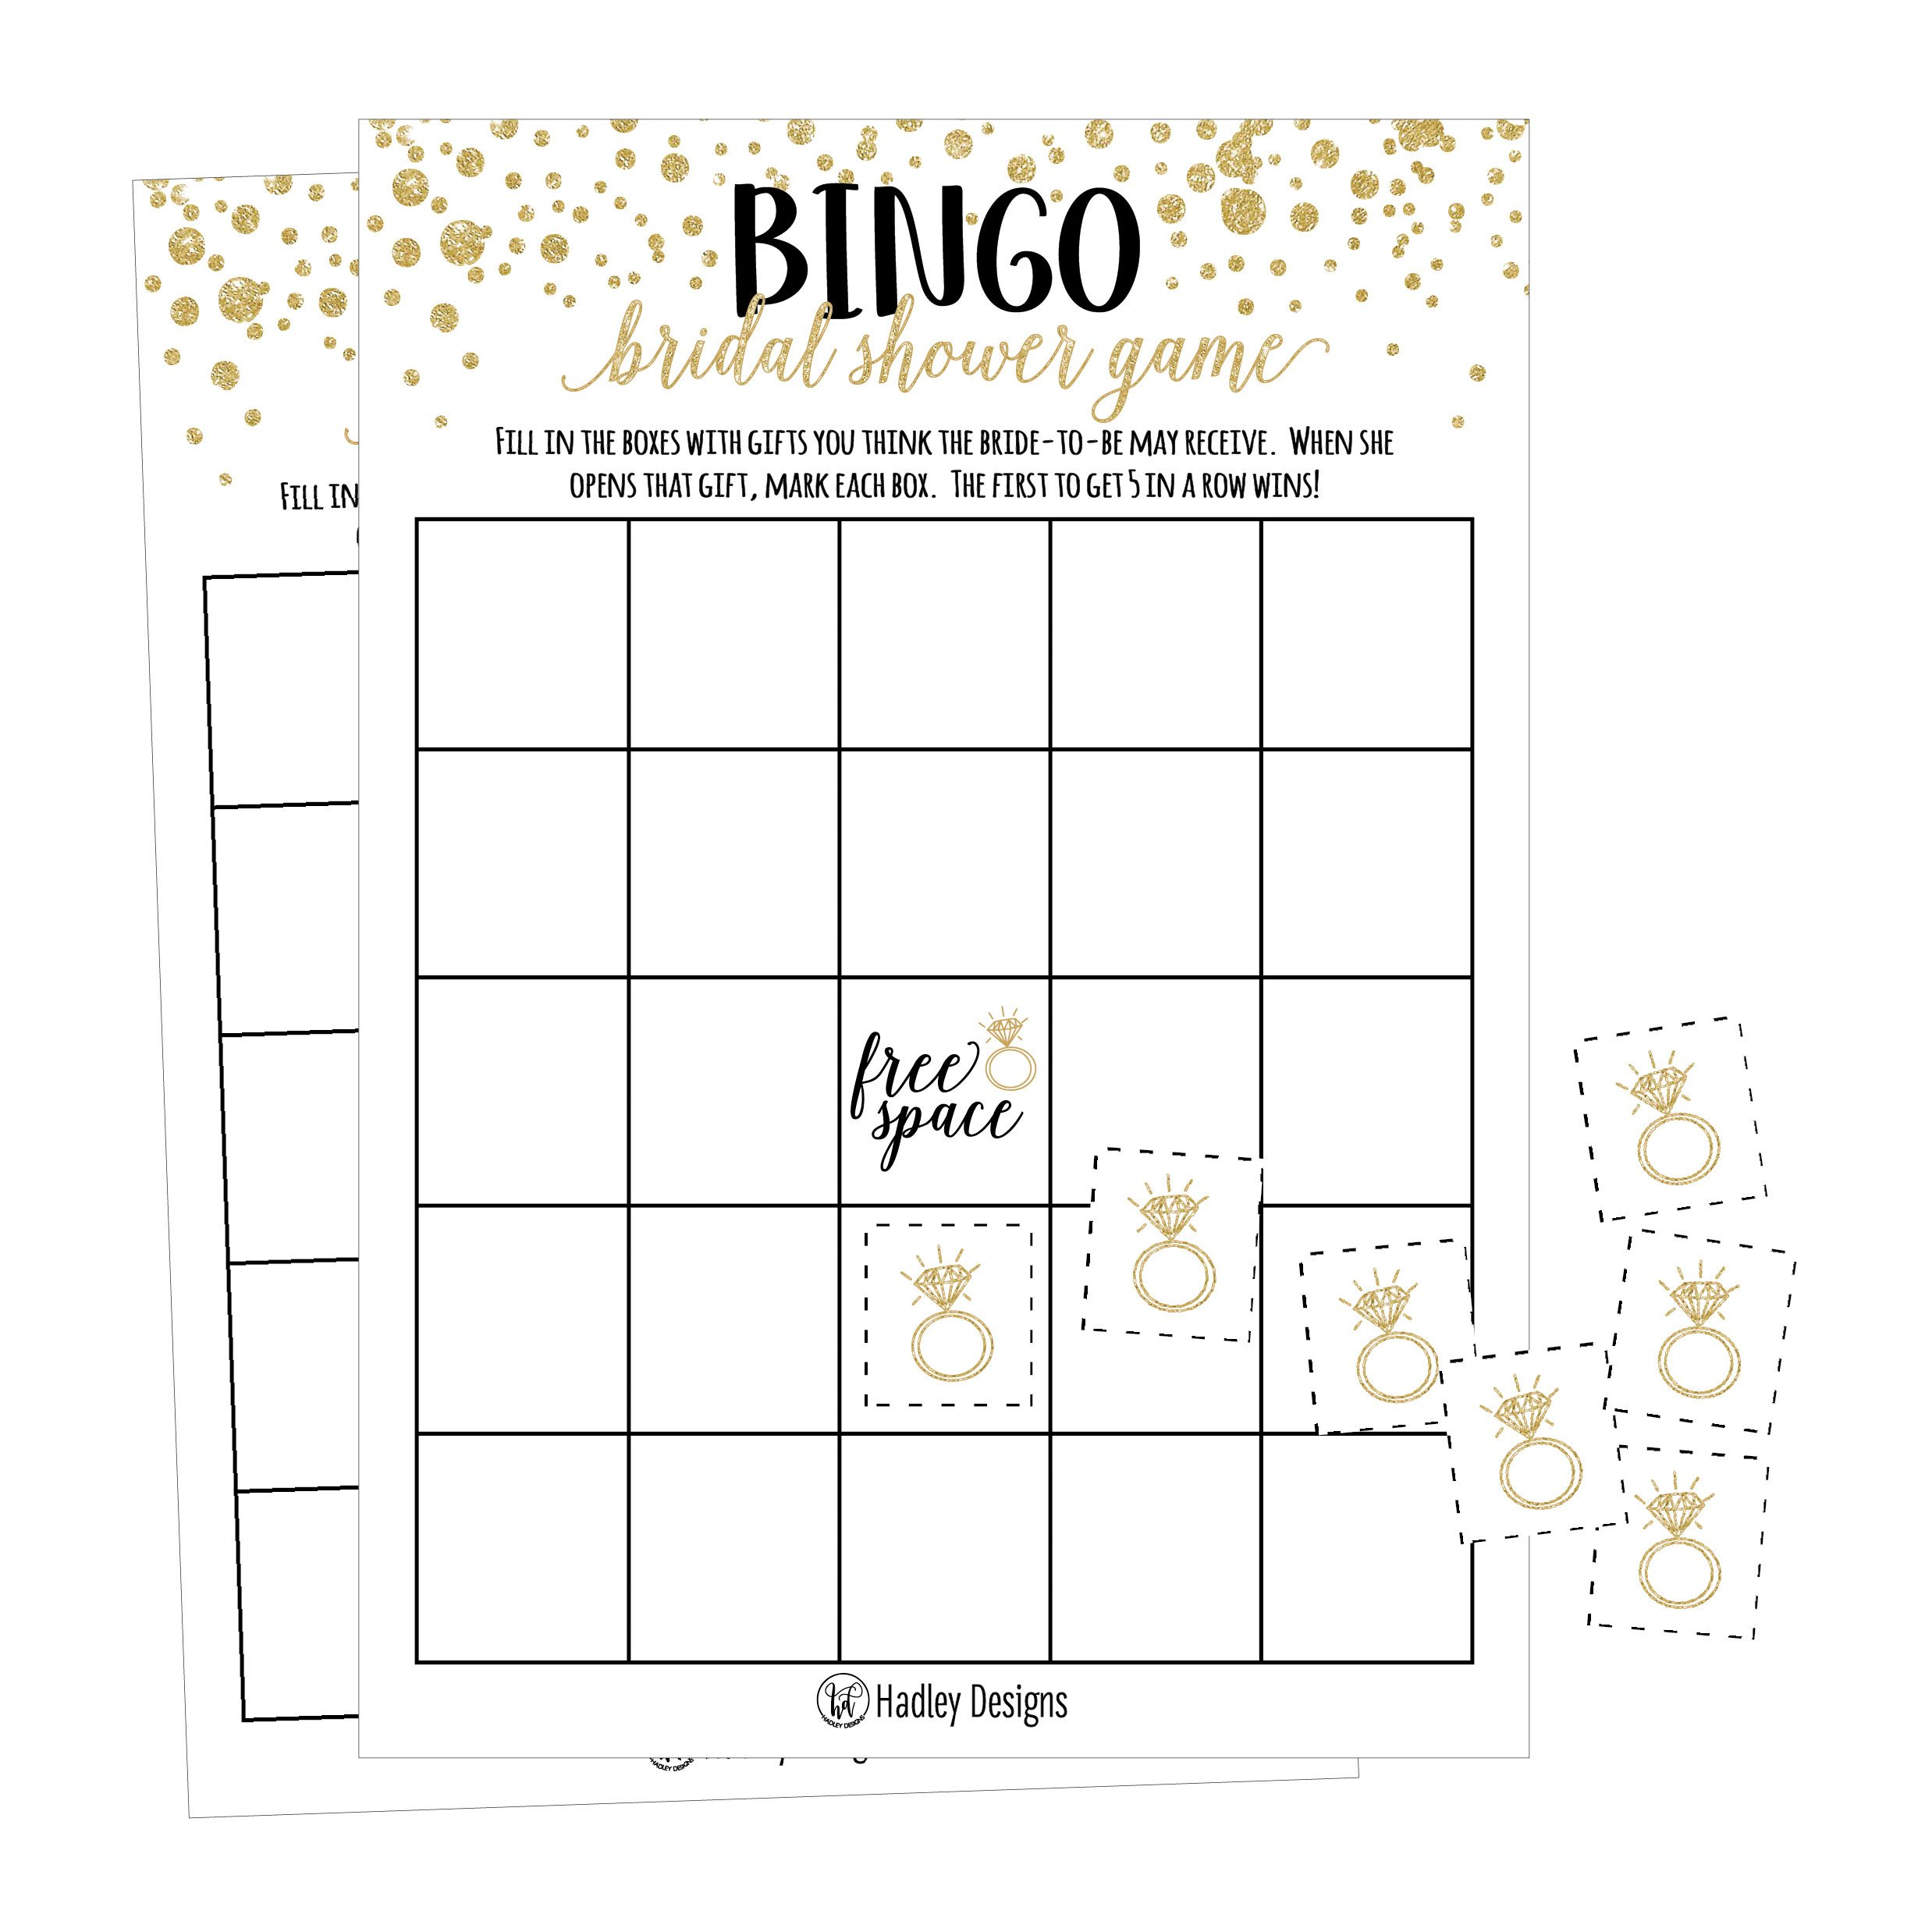 25 Gold Vintage Bingo Game Cards For Bridal Wedding Shower and Bachelorette Party, Bulk Blank Squares To Fill In Gift Ideas, Funny Supplies For Bride and Couple PLUS 25 Wedding Ring Bingo Chip Markers